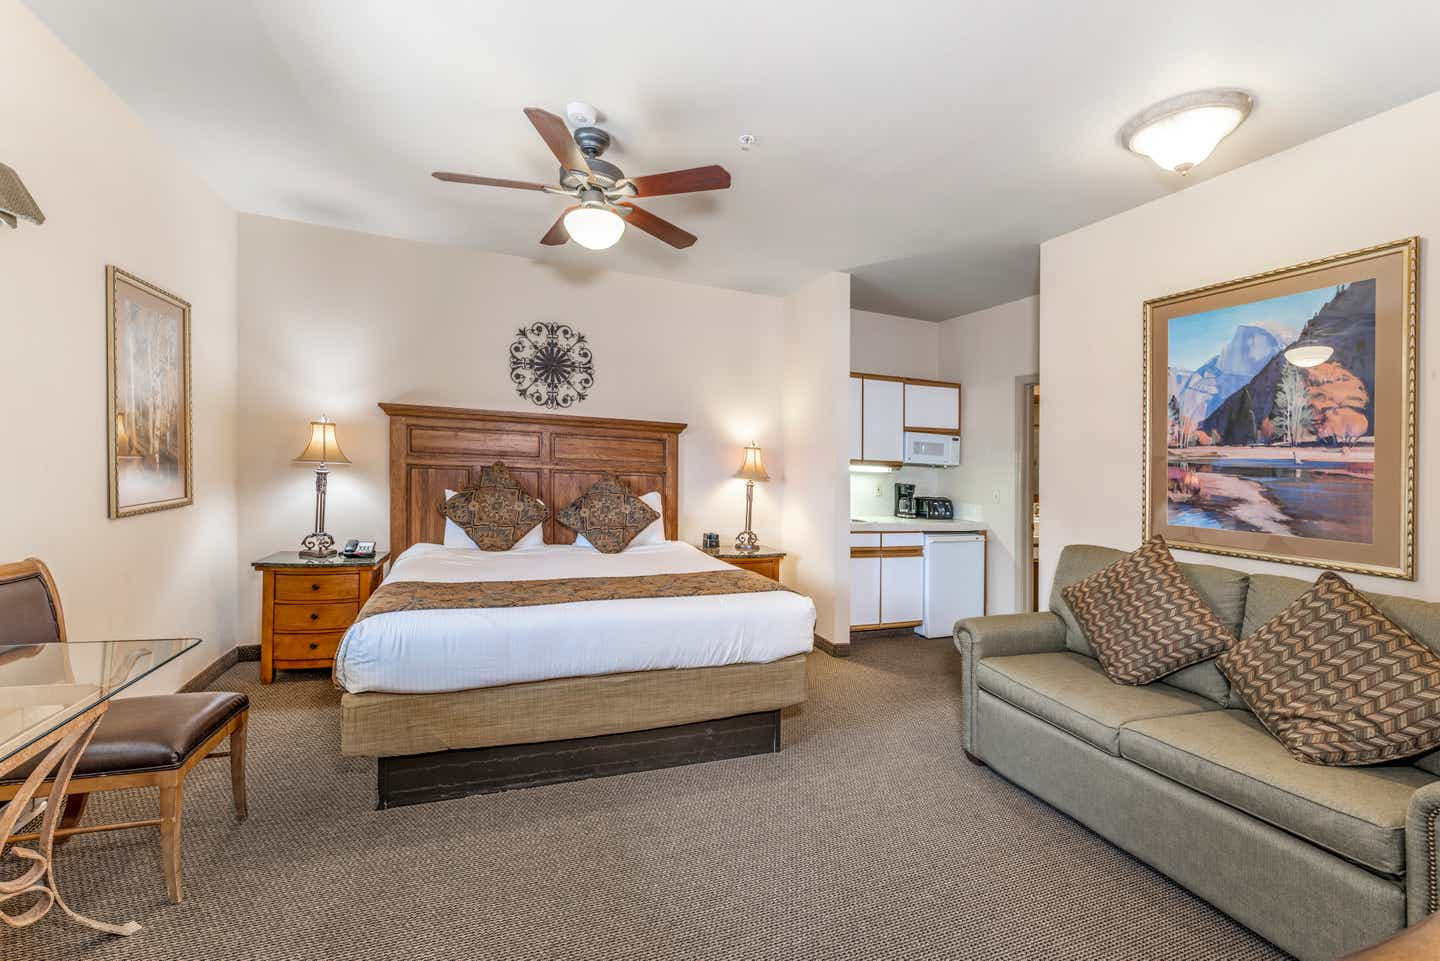 Bed and living area in a Ridge Pointe studio villa at Tahoe Ridge Resort